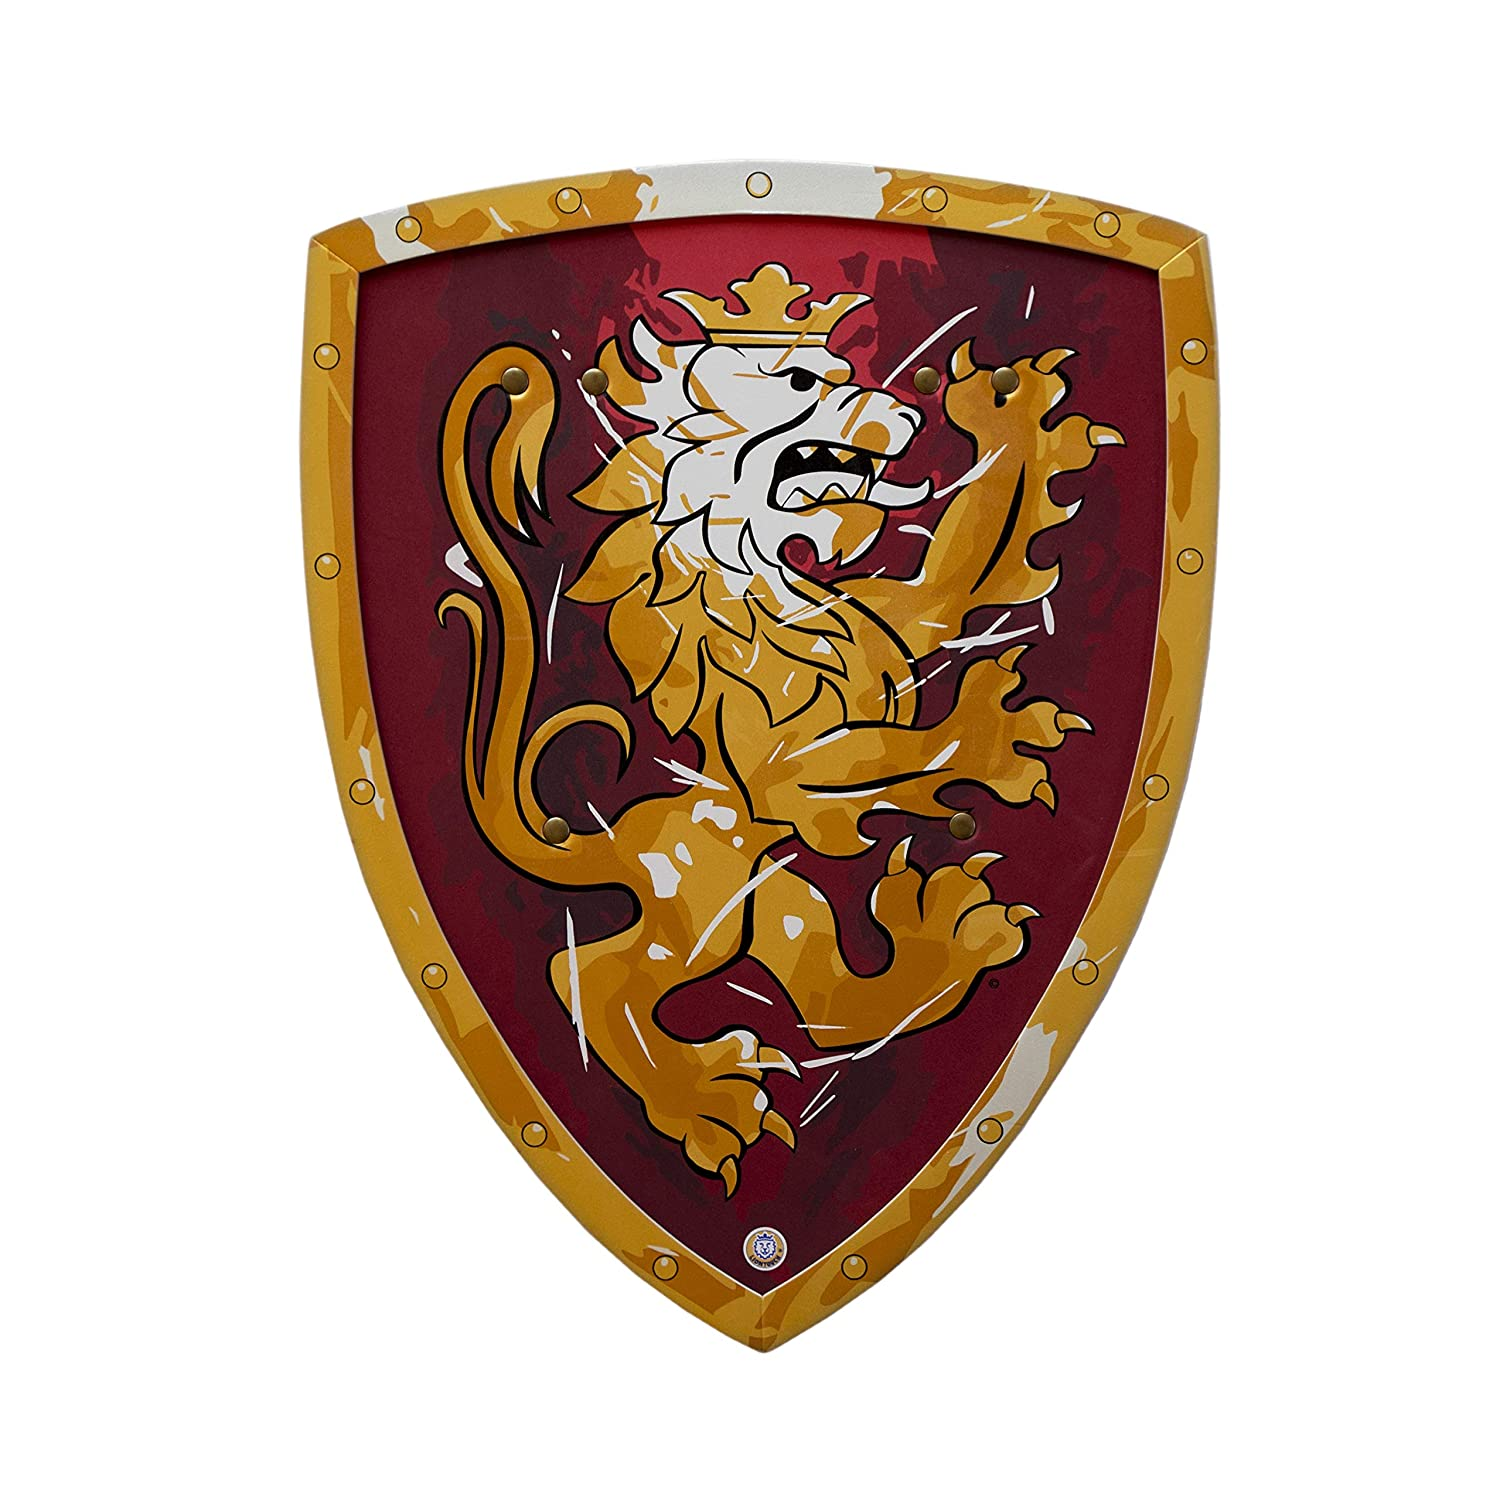 BestSaller Shield Noble Knight, 45x34,5cm red/gold 1756